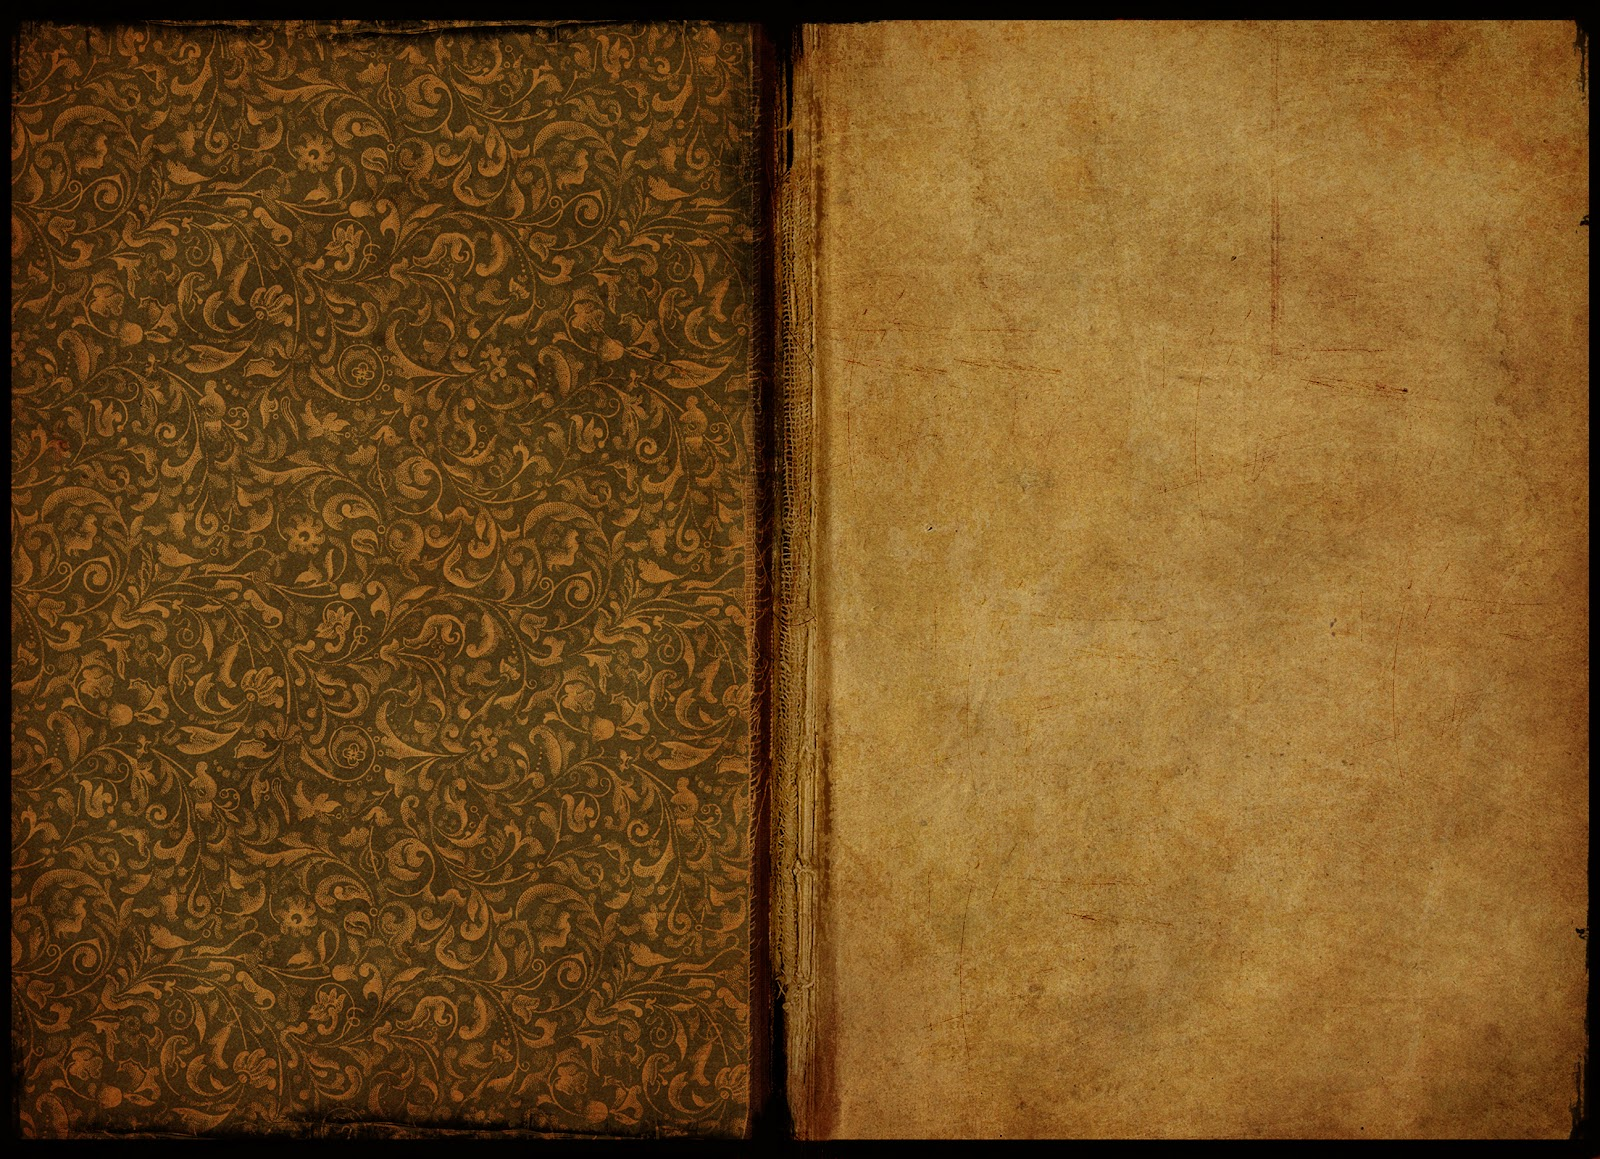 Free Wallpaper Dekstop: Old Books And Papers Set